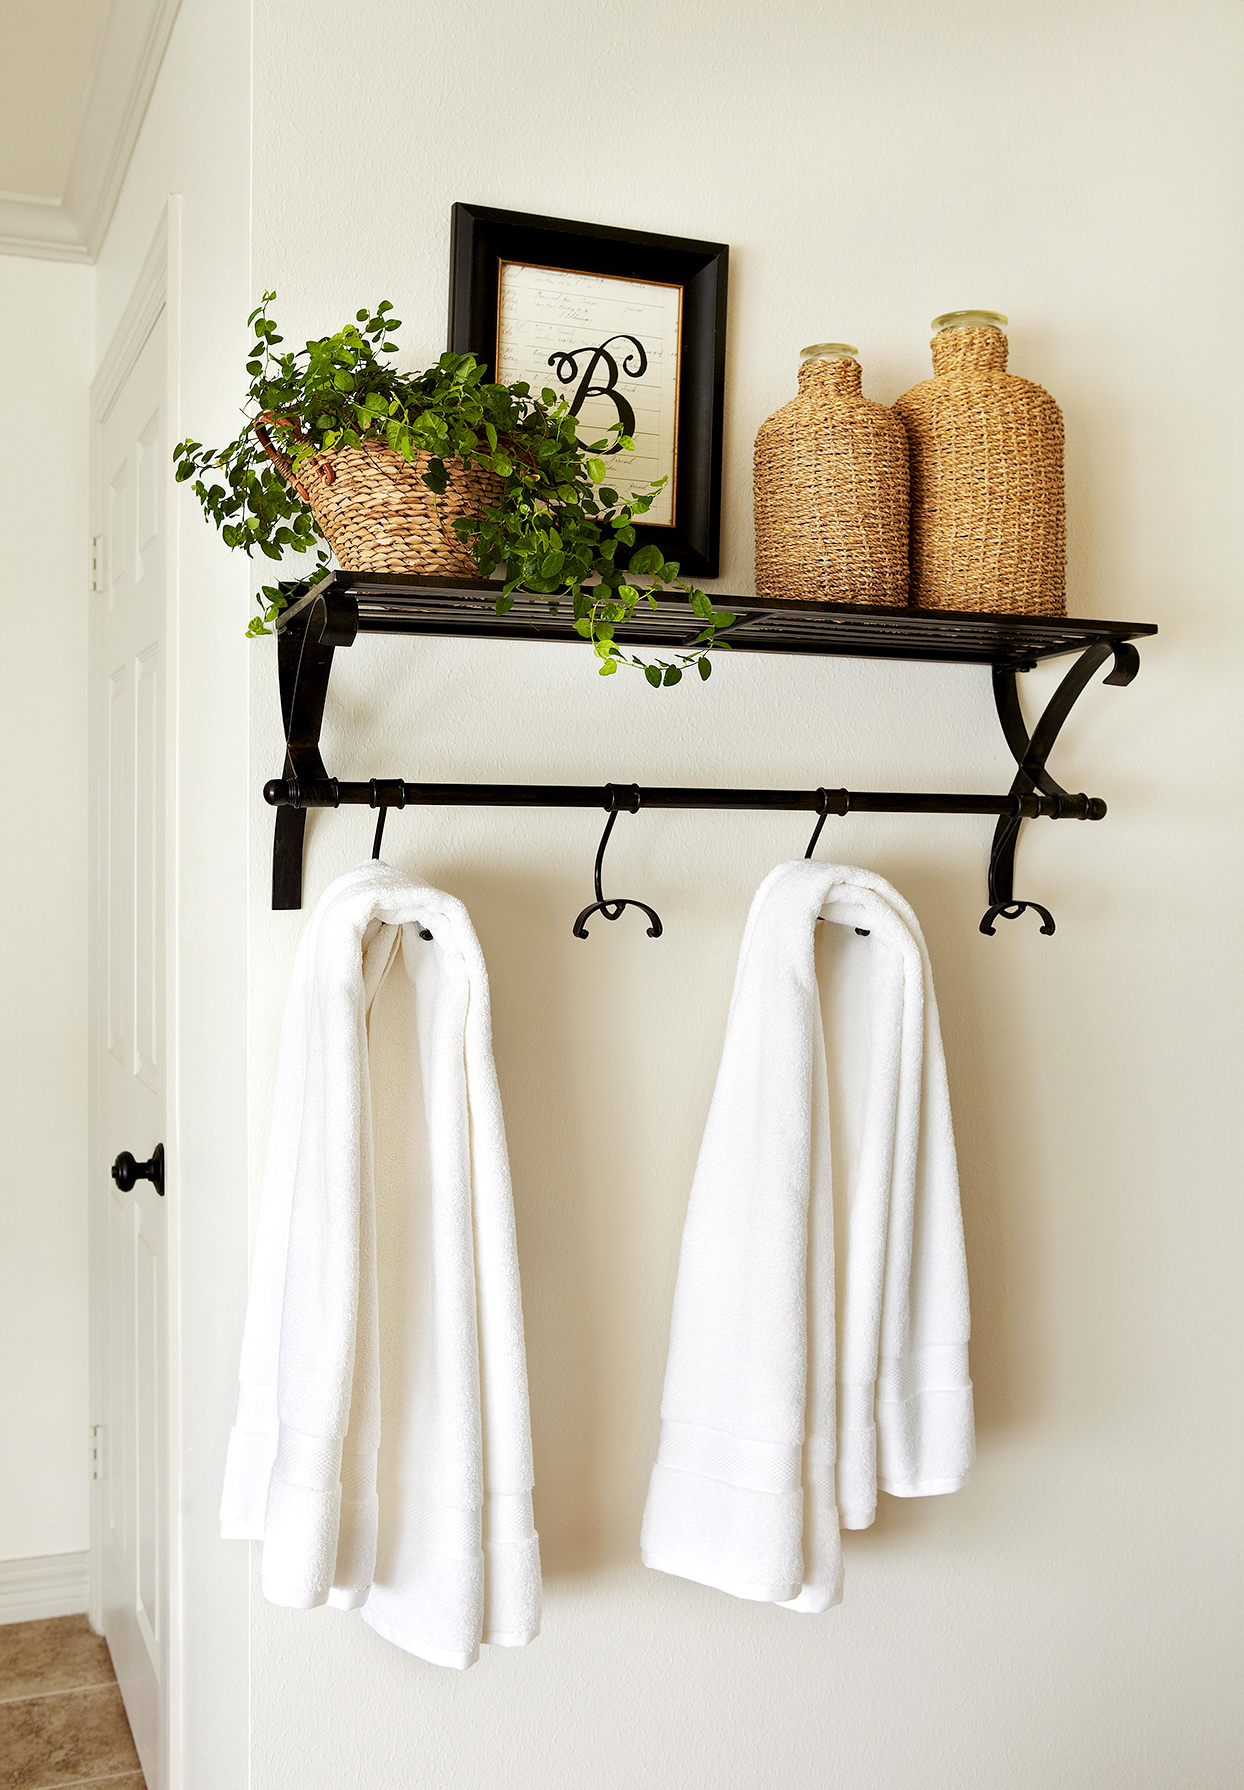 Wall shelf with towels